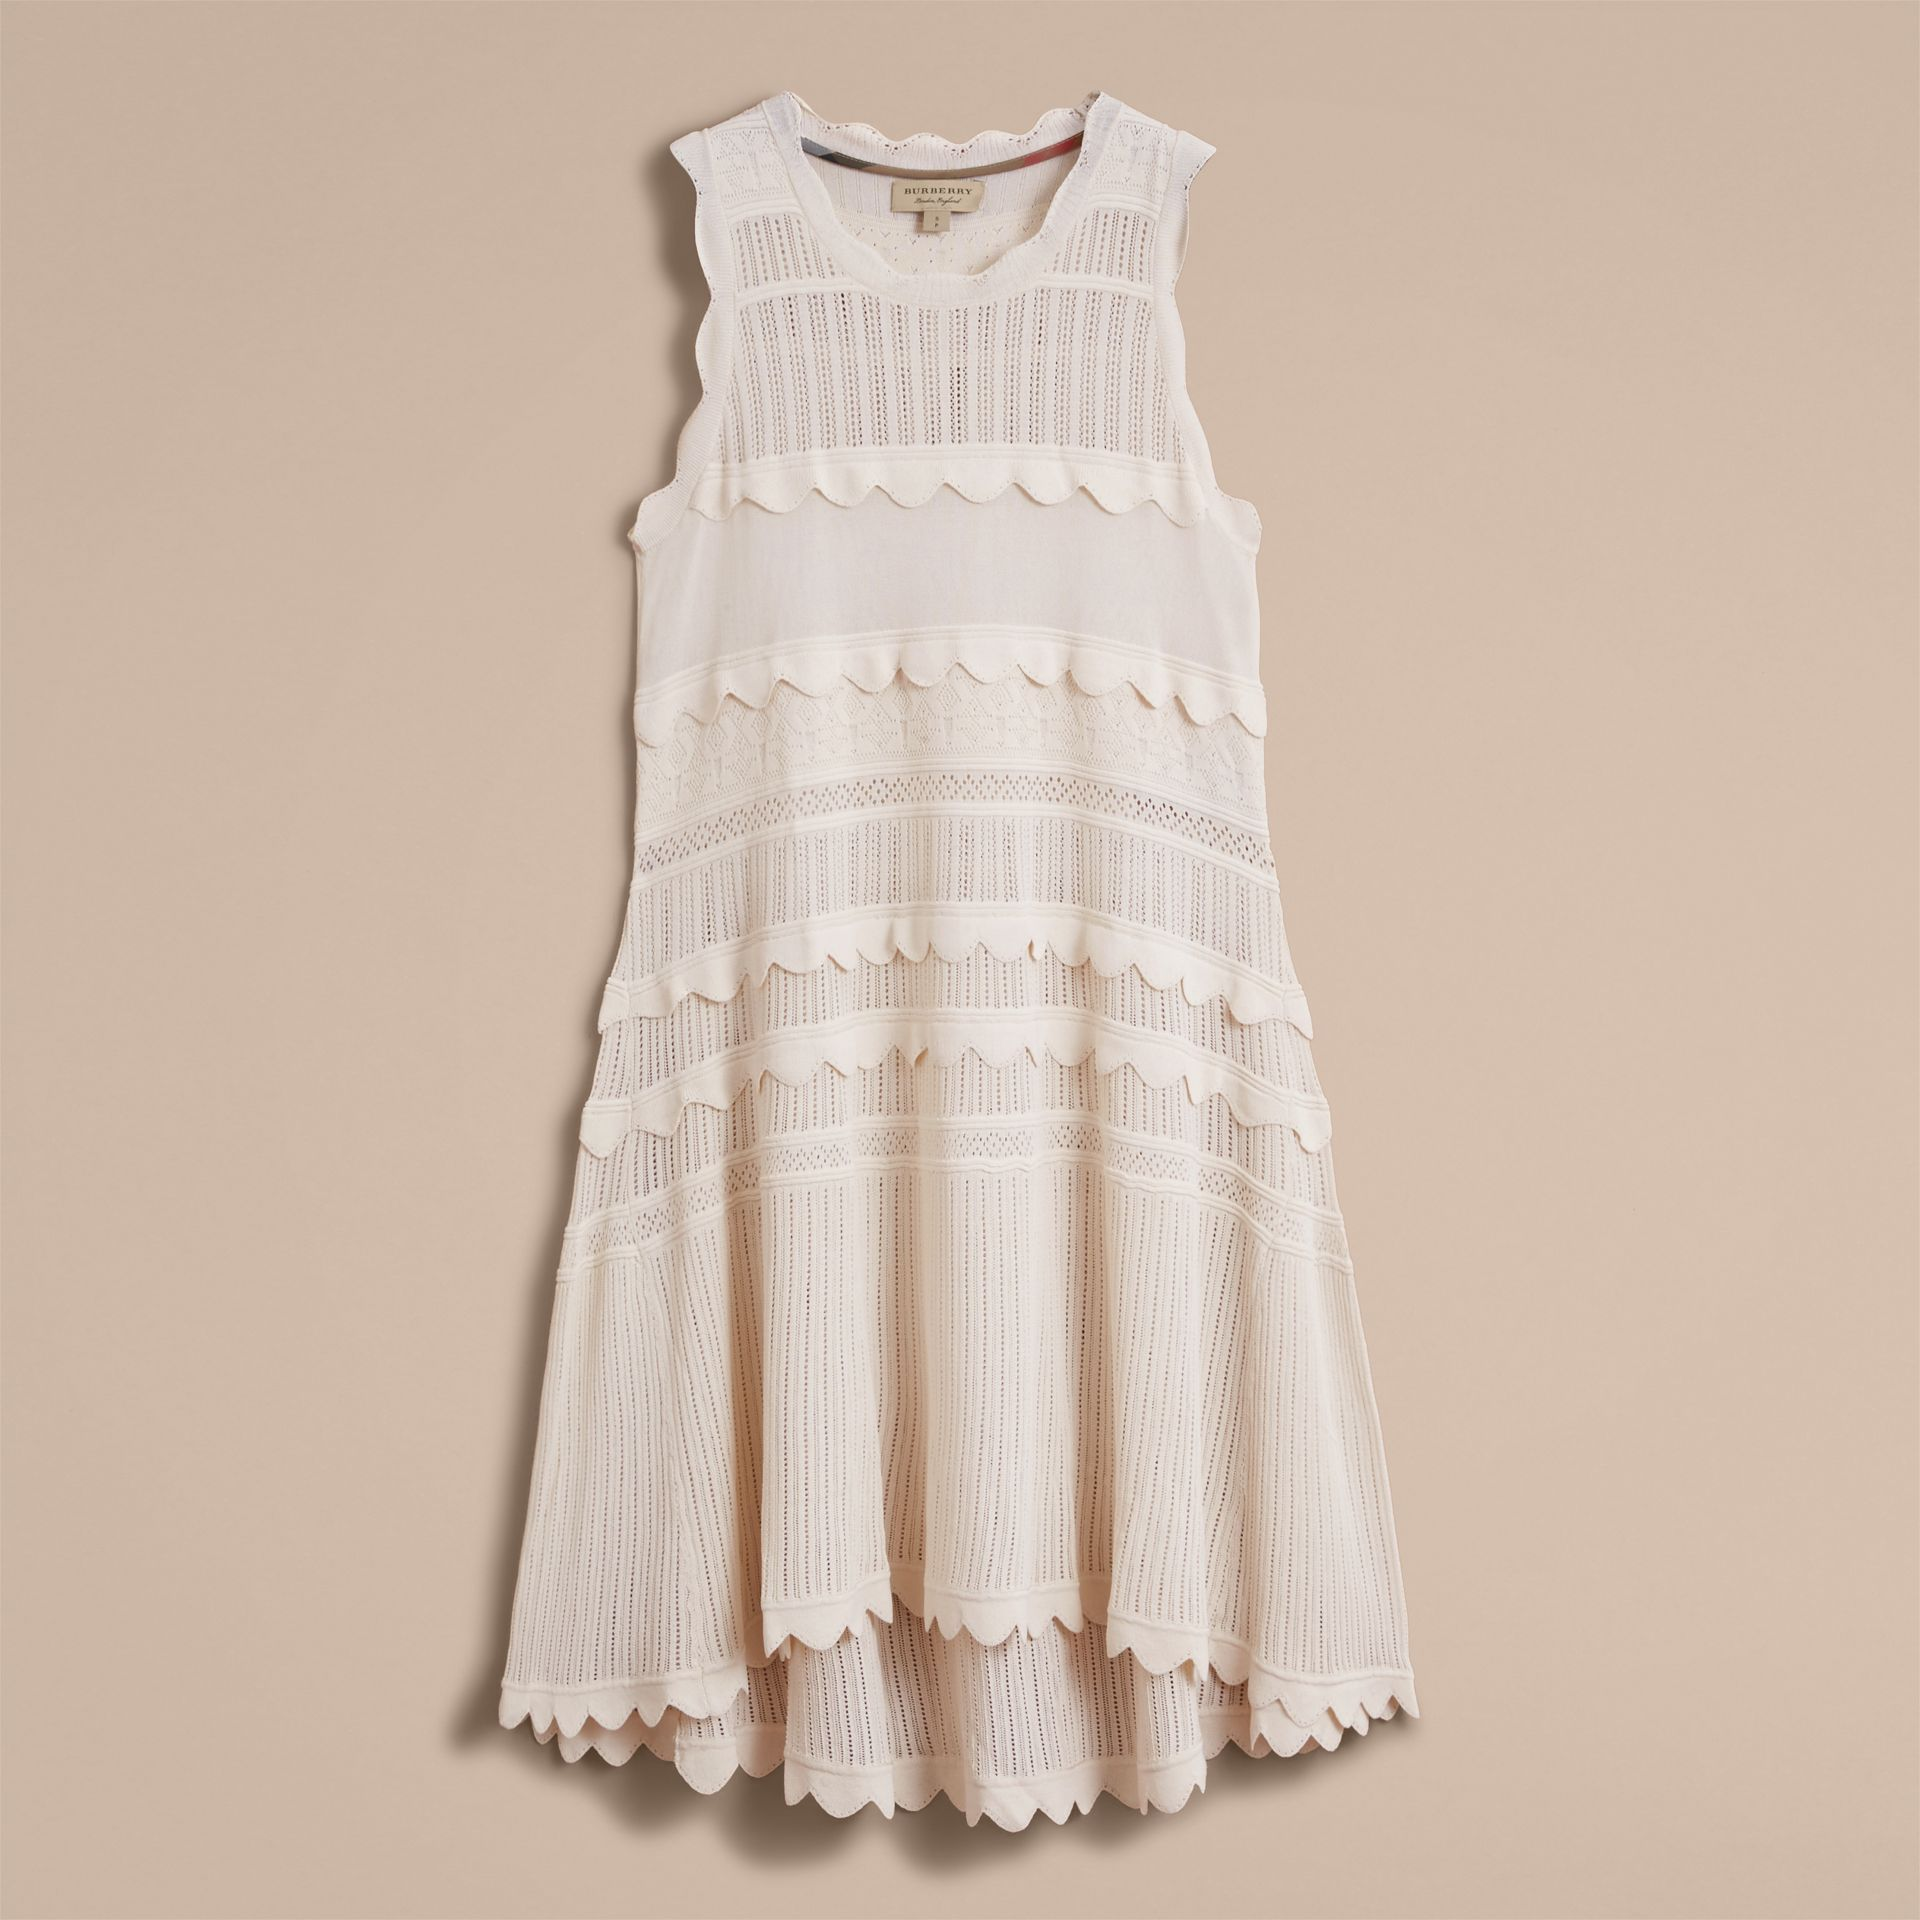 Scallop Detail Multi-stitch Swing Dress - Women | Burberry - gallery image 4